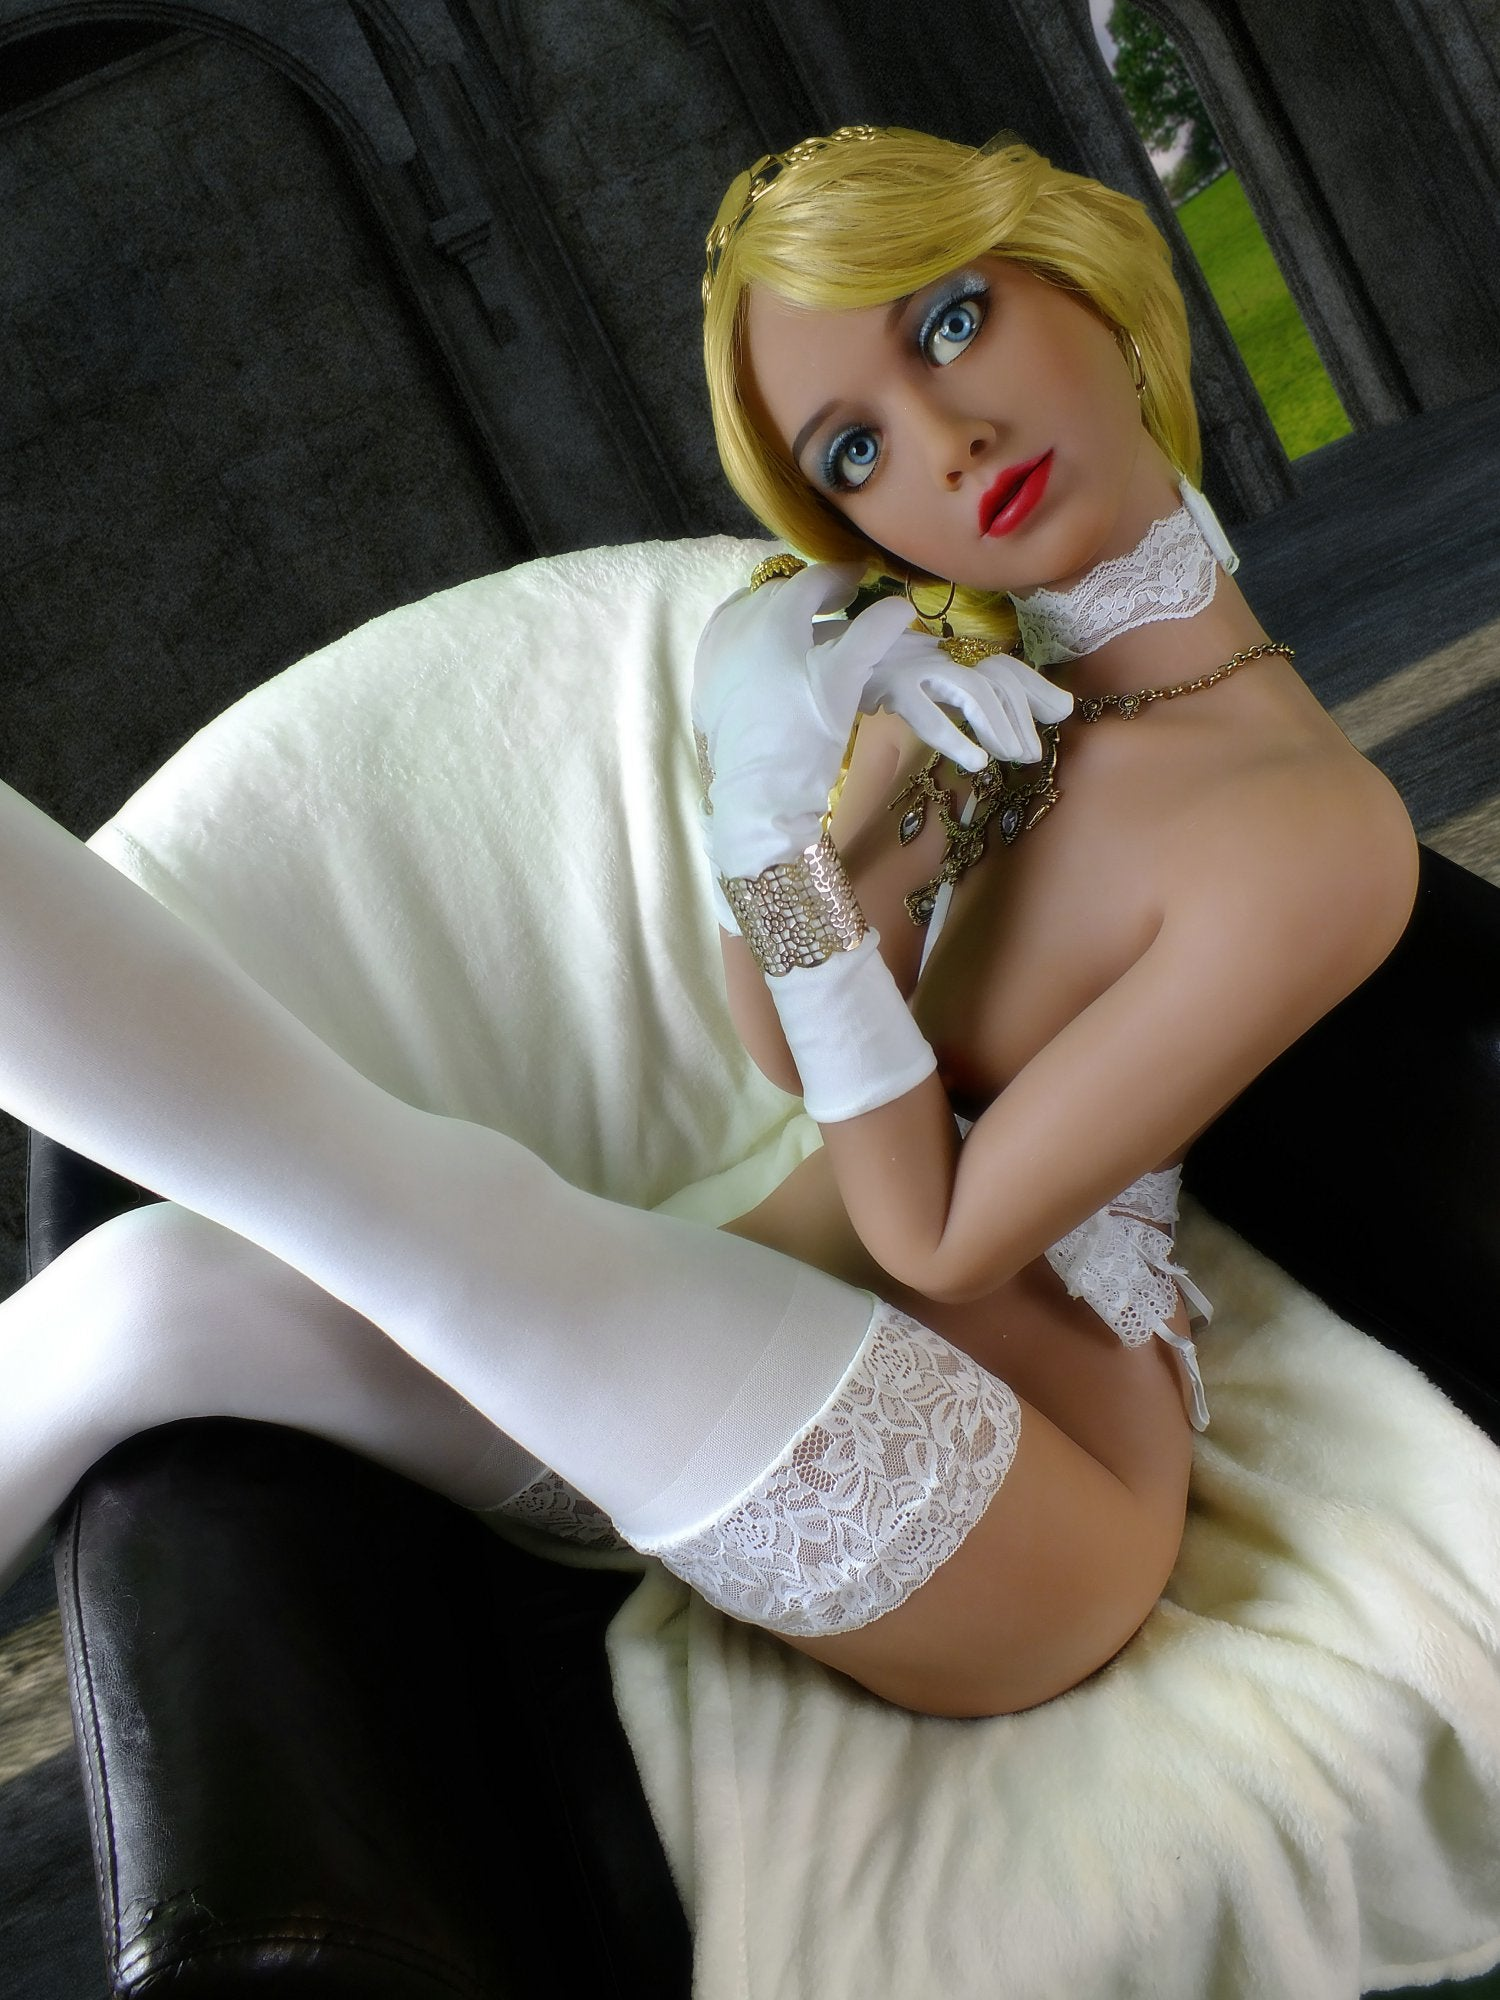 paula 168cm blonde skinny flat chested tpe yl sex doll(8)